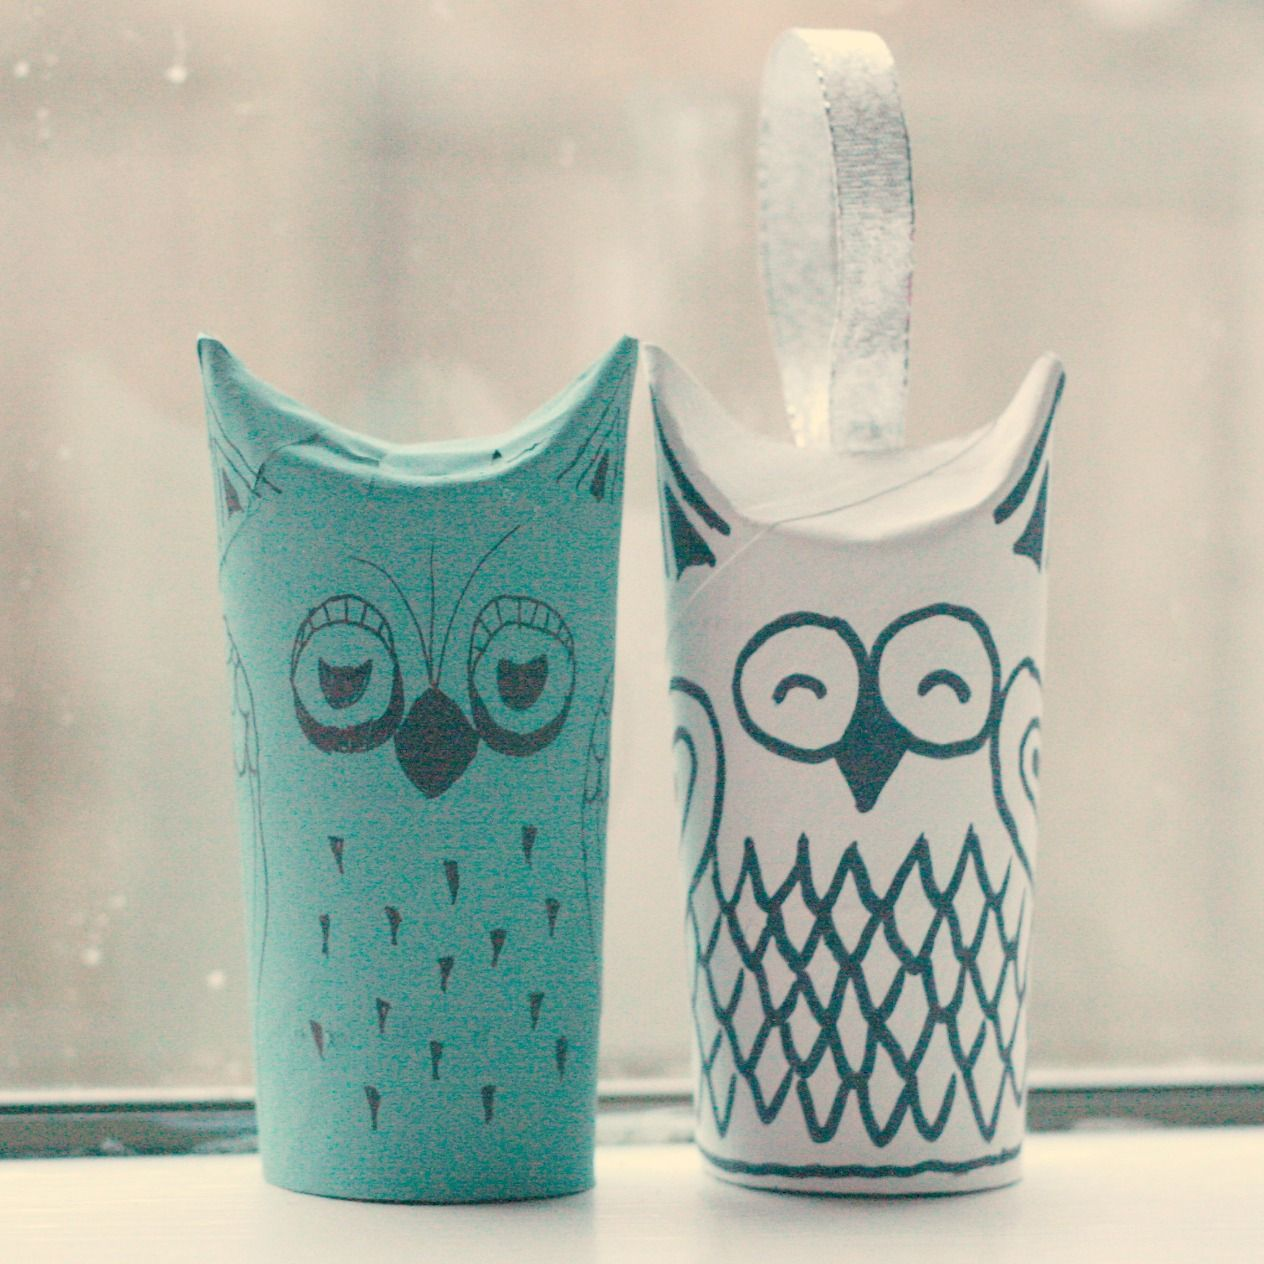 DIY Owl out of toilet paper tube! You can also glue a ribbon under the fold to make a cute Christmas ornament. <3